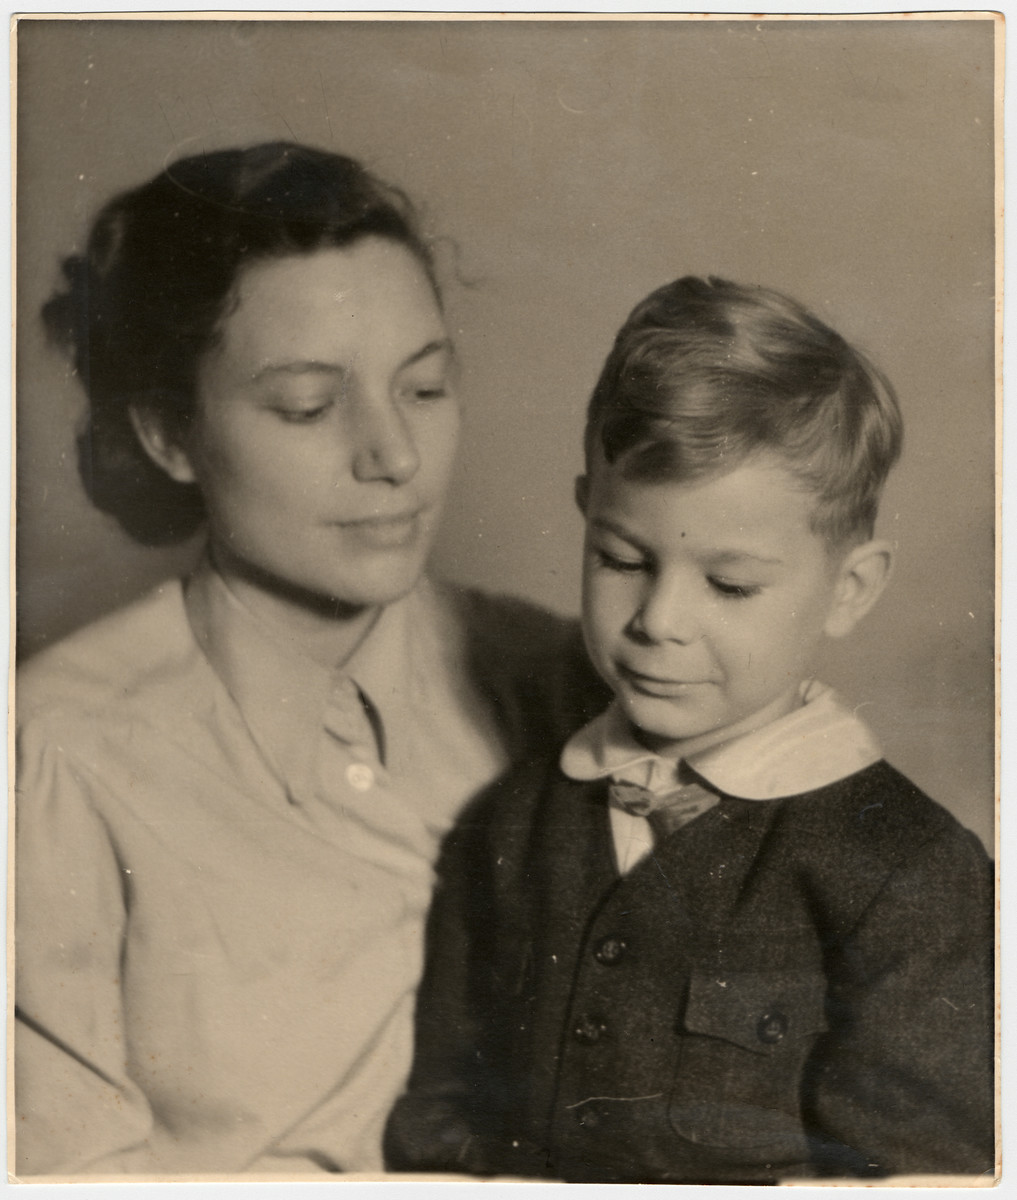 Studio portrait of Lotte and Robert Wagemann, a Jehovah's Witness mother and son.